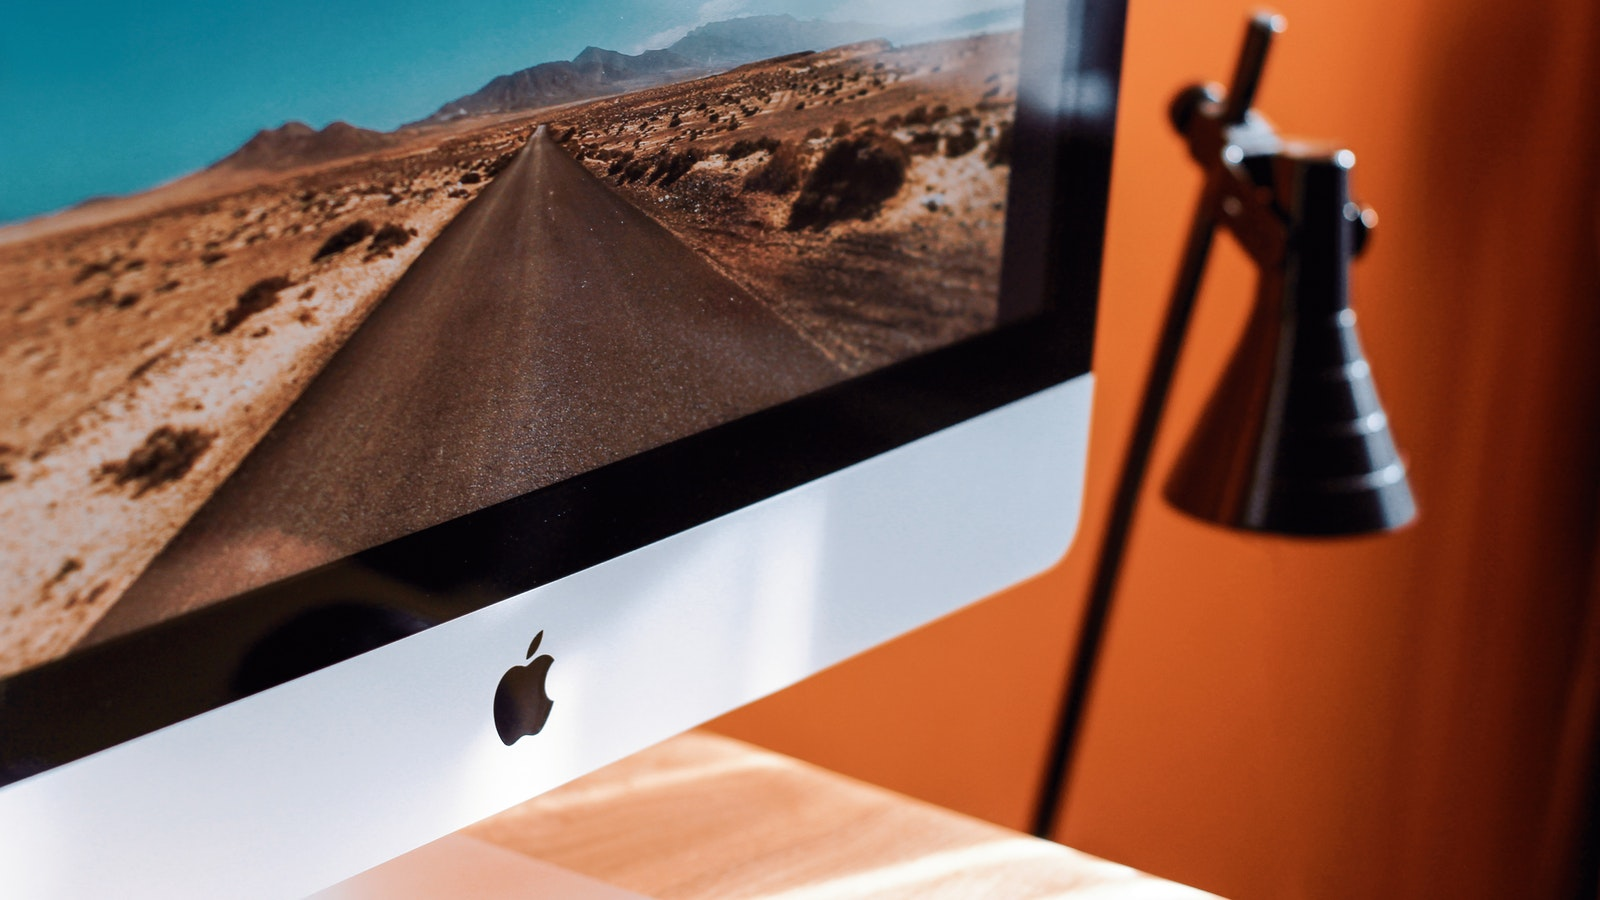 close-up-photography-of-imac-turned-on-1034650.jpg